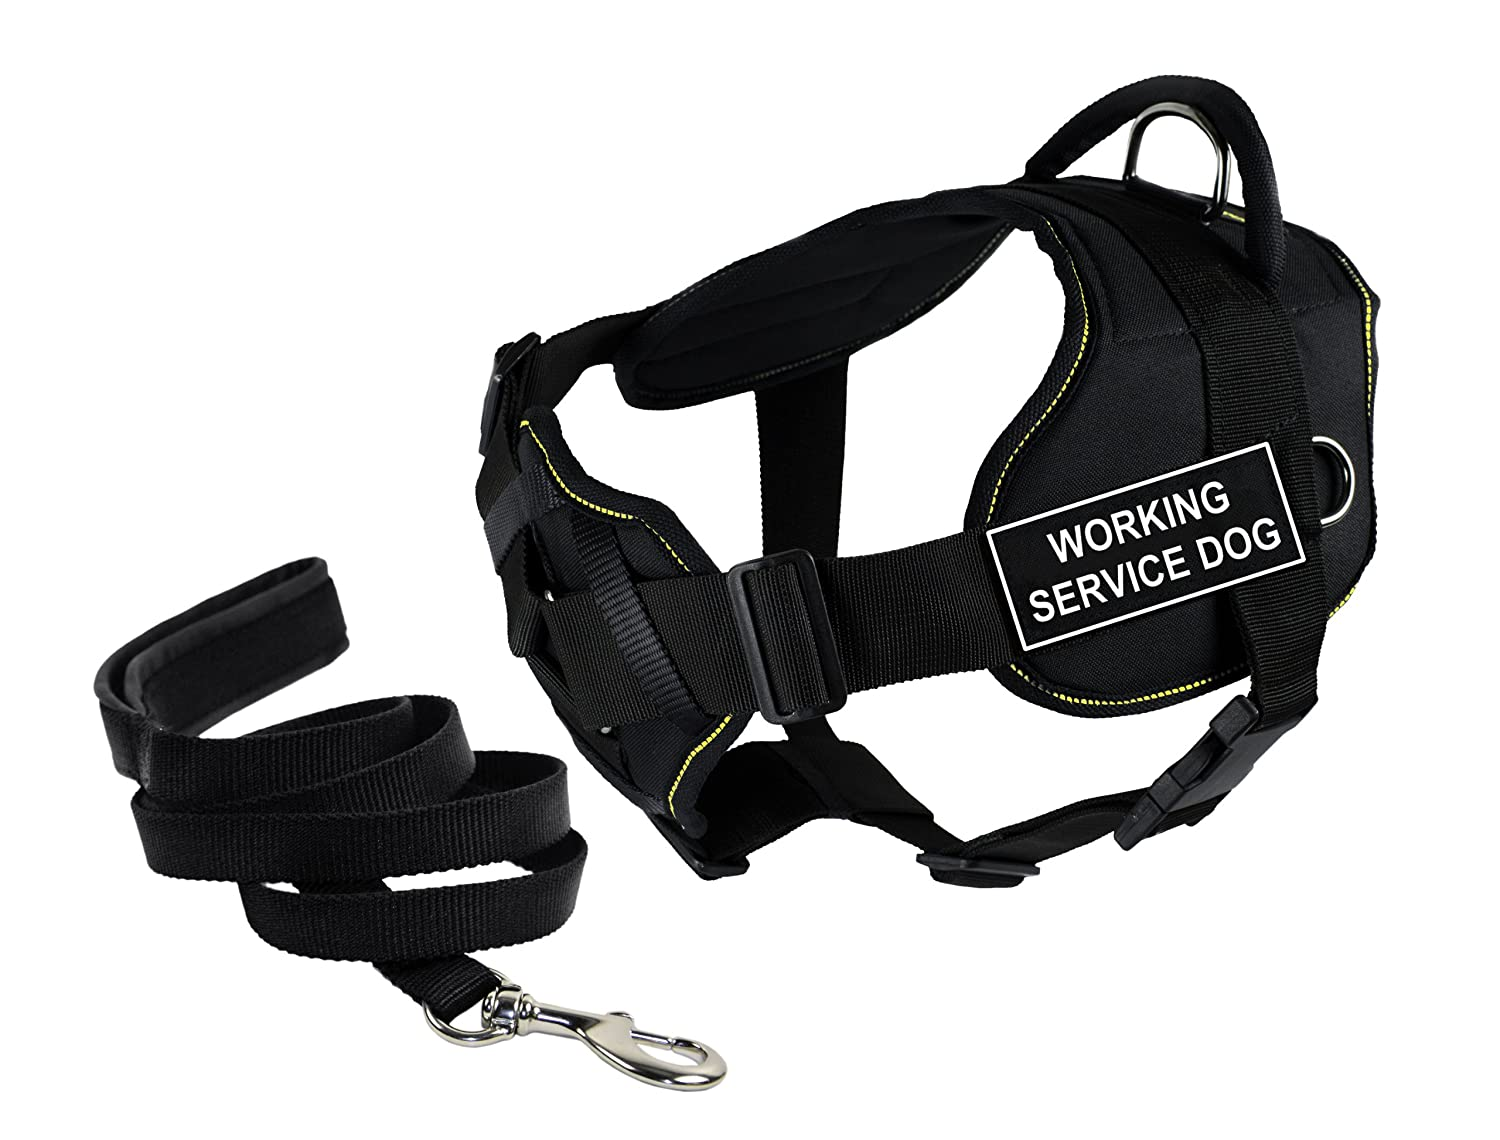 Dean & Tyler's DT Fun Chest Support Working Service Dog  Harness, Large, with 6 ft Padded Puppy Leash.